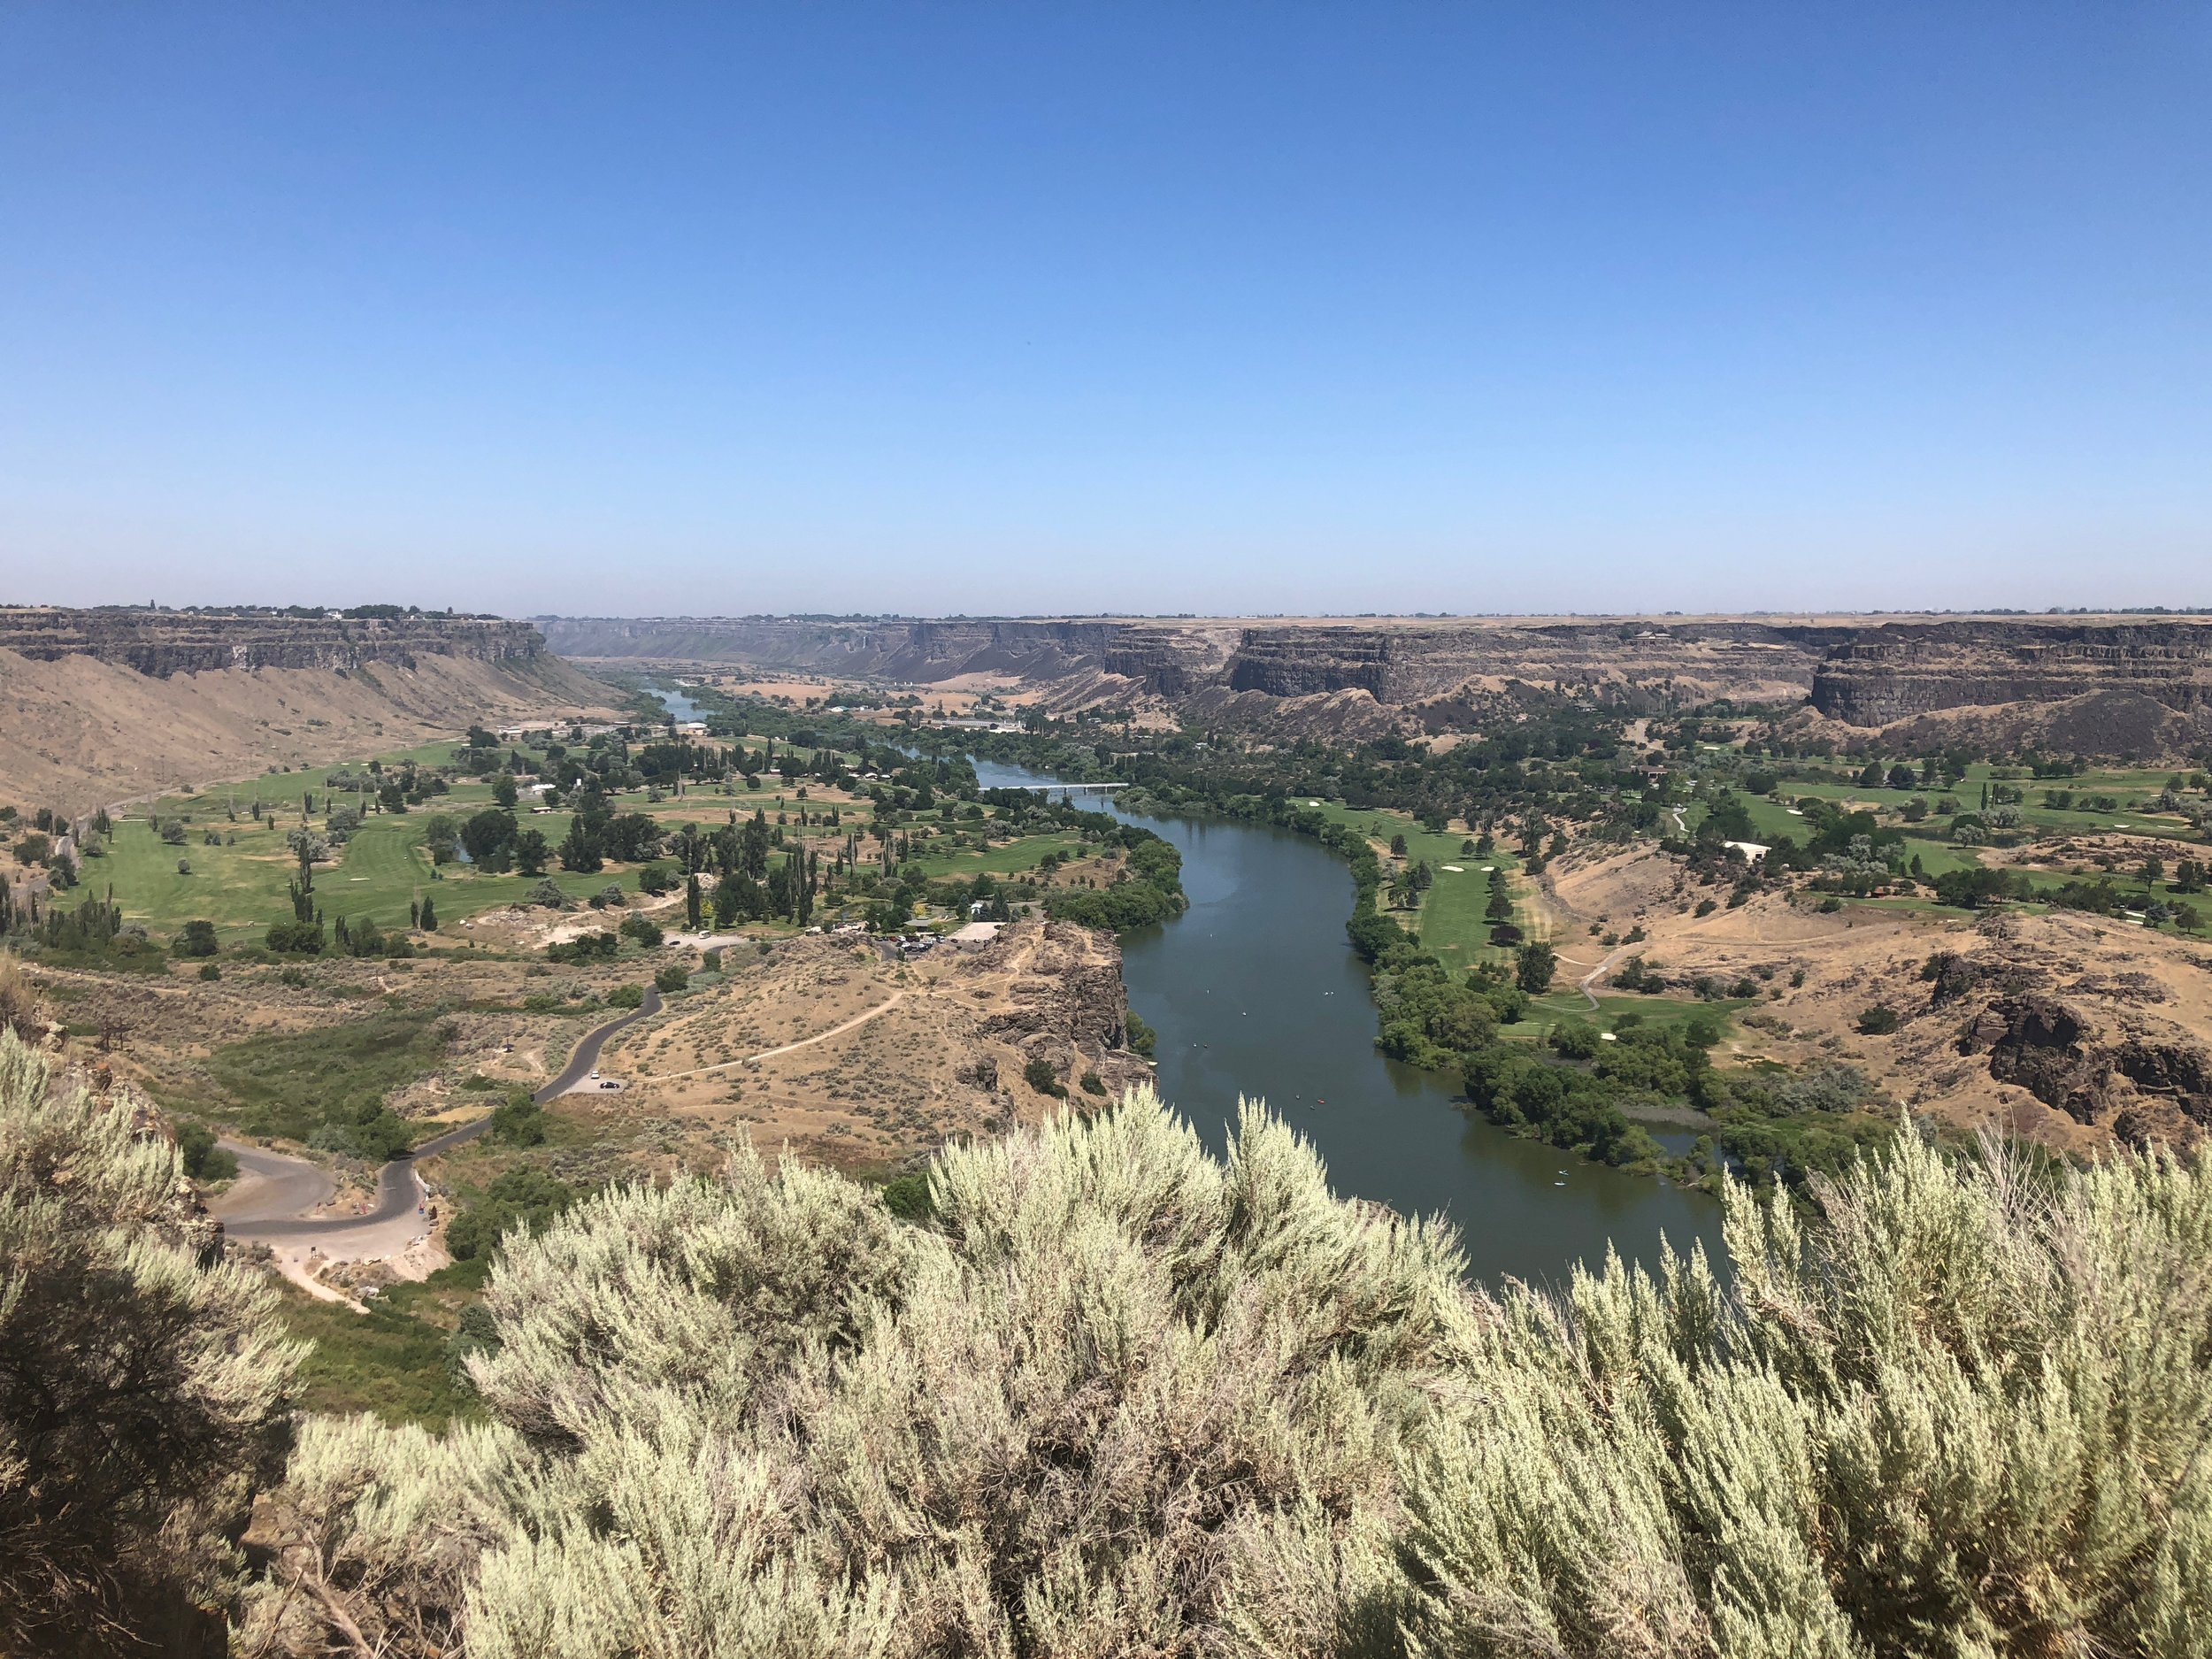 A view of the Snake River